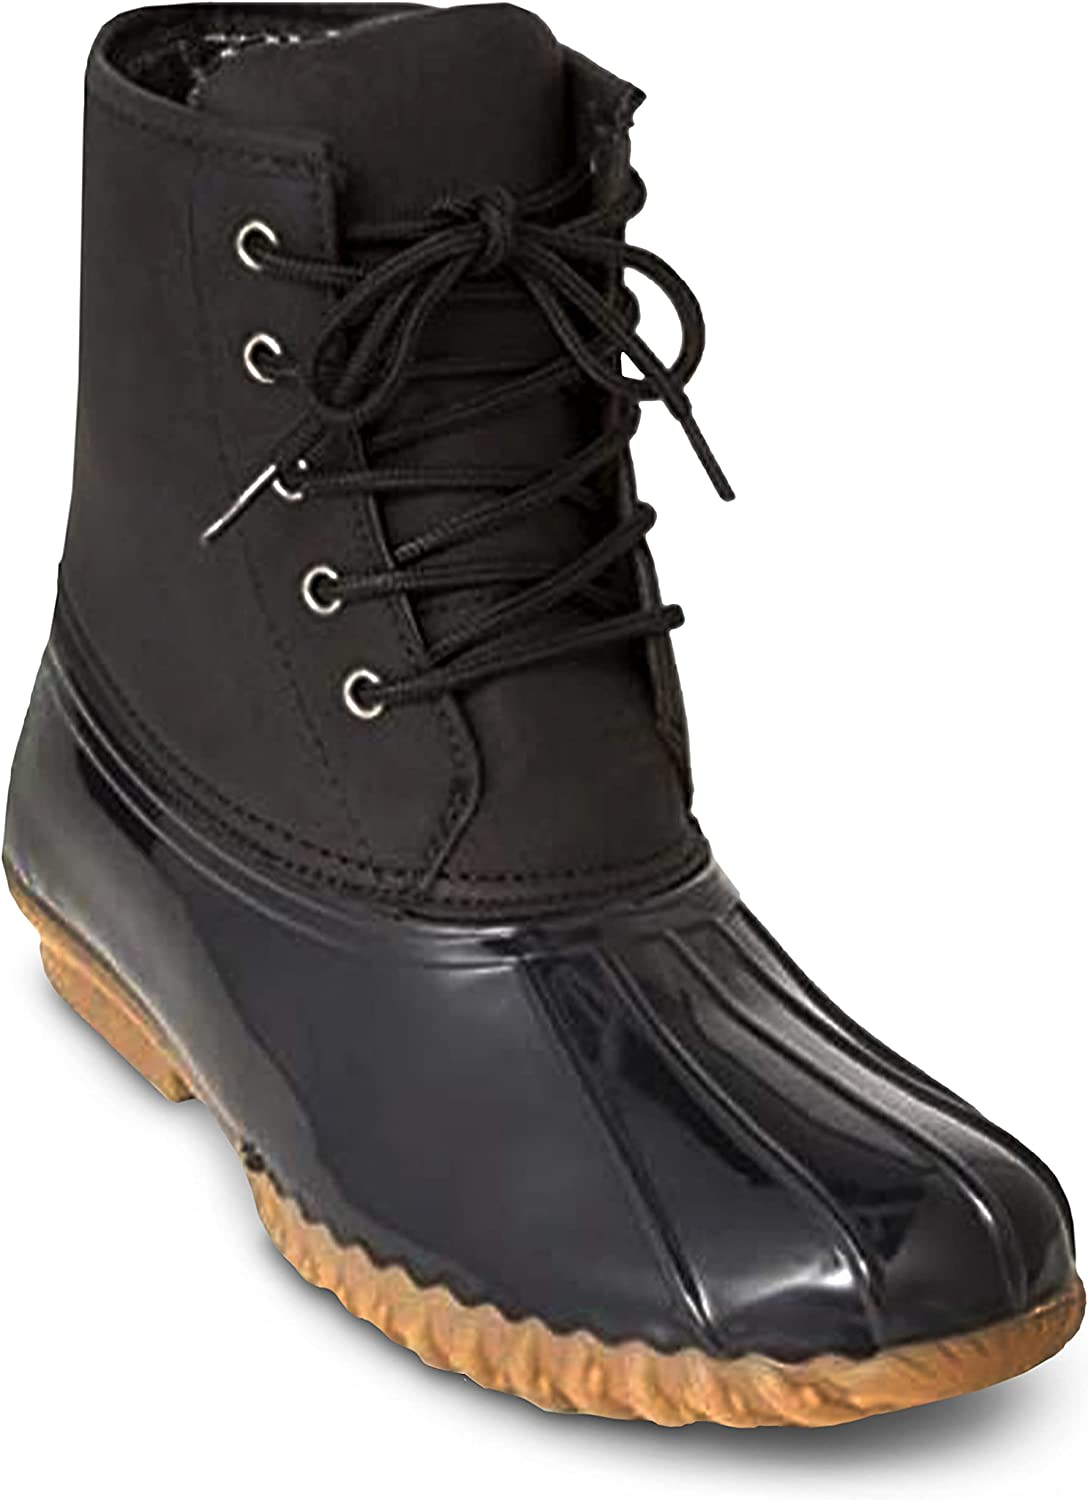 Charles Albert Women's Winter Duck Boots, Mid-Calf, Waterproof Insulated Lace-Up